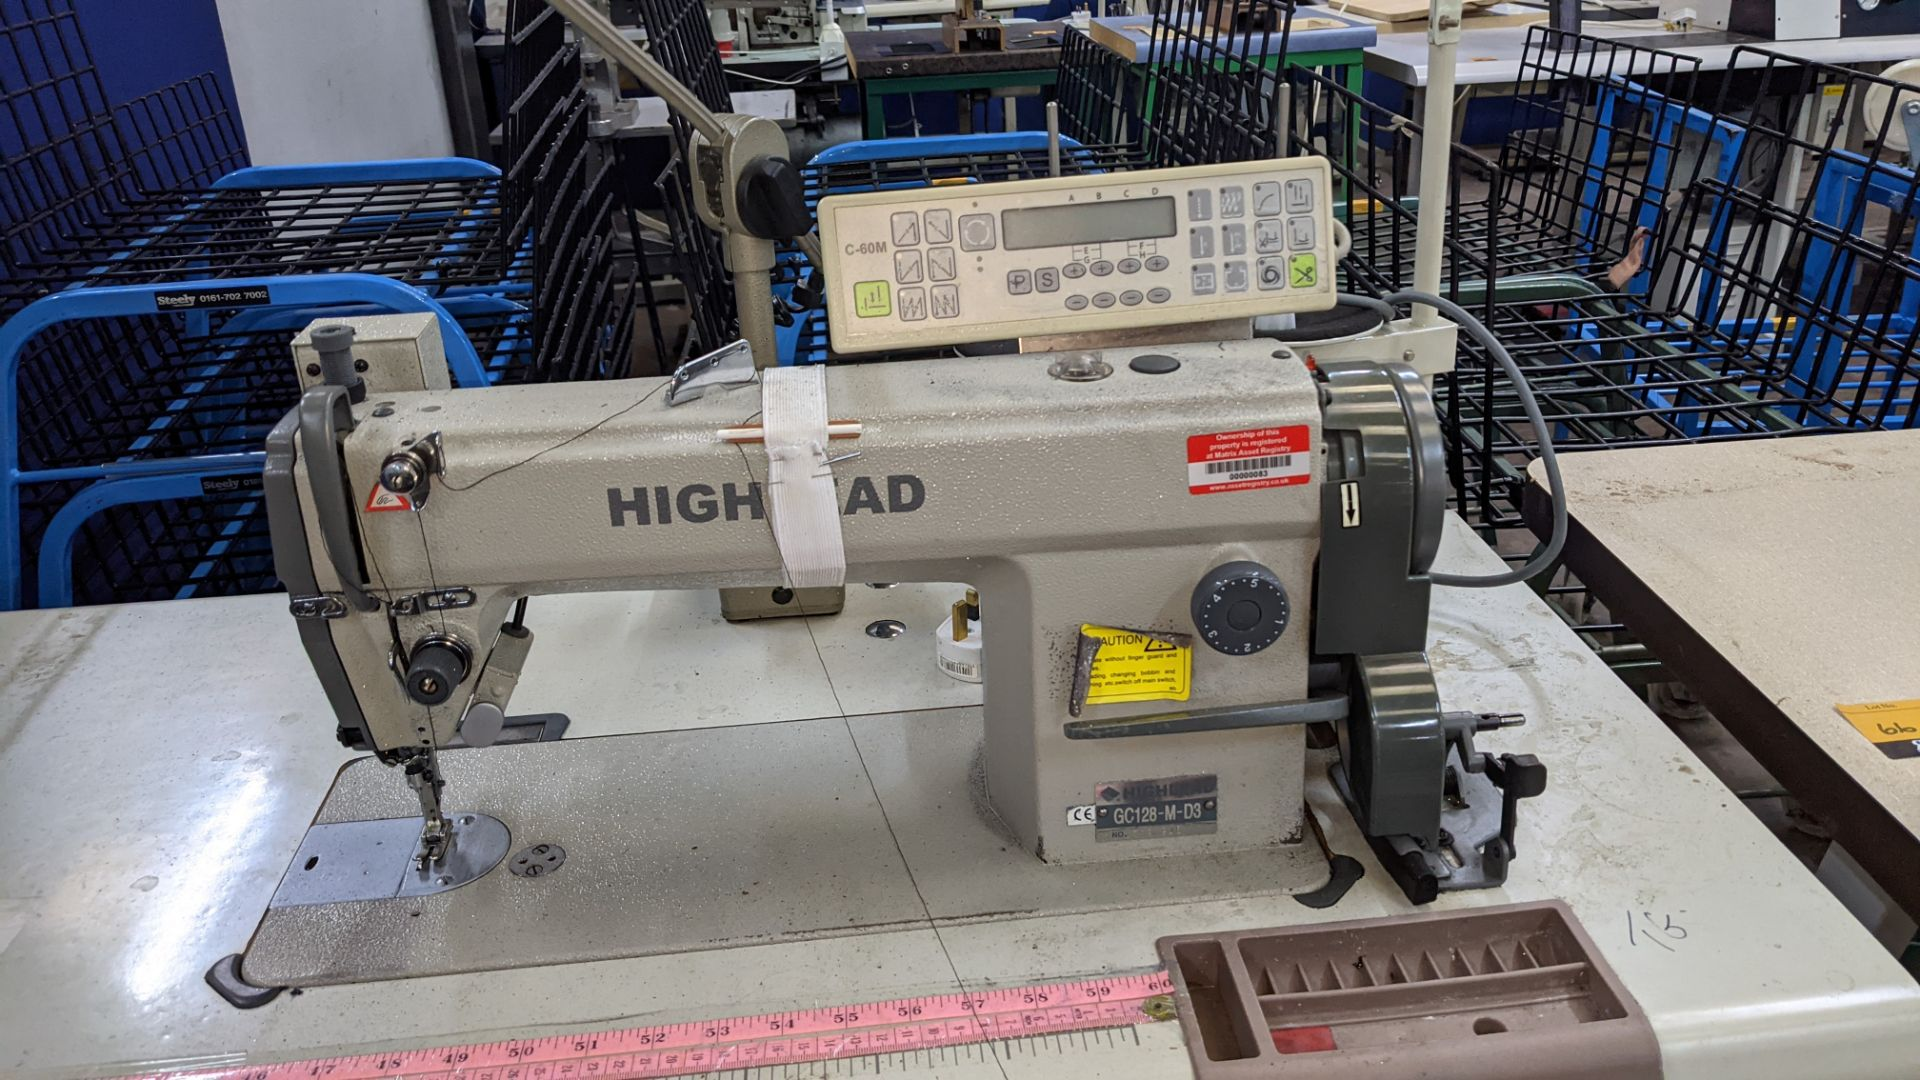 Highlead model GC128-M-D3 sewing machine with model C-60M digital controller - Image 7 of 18